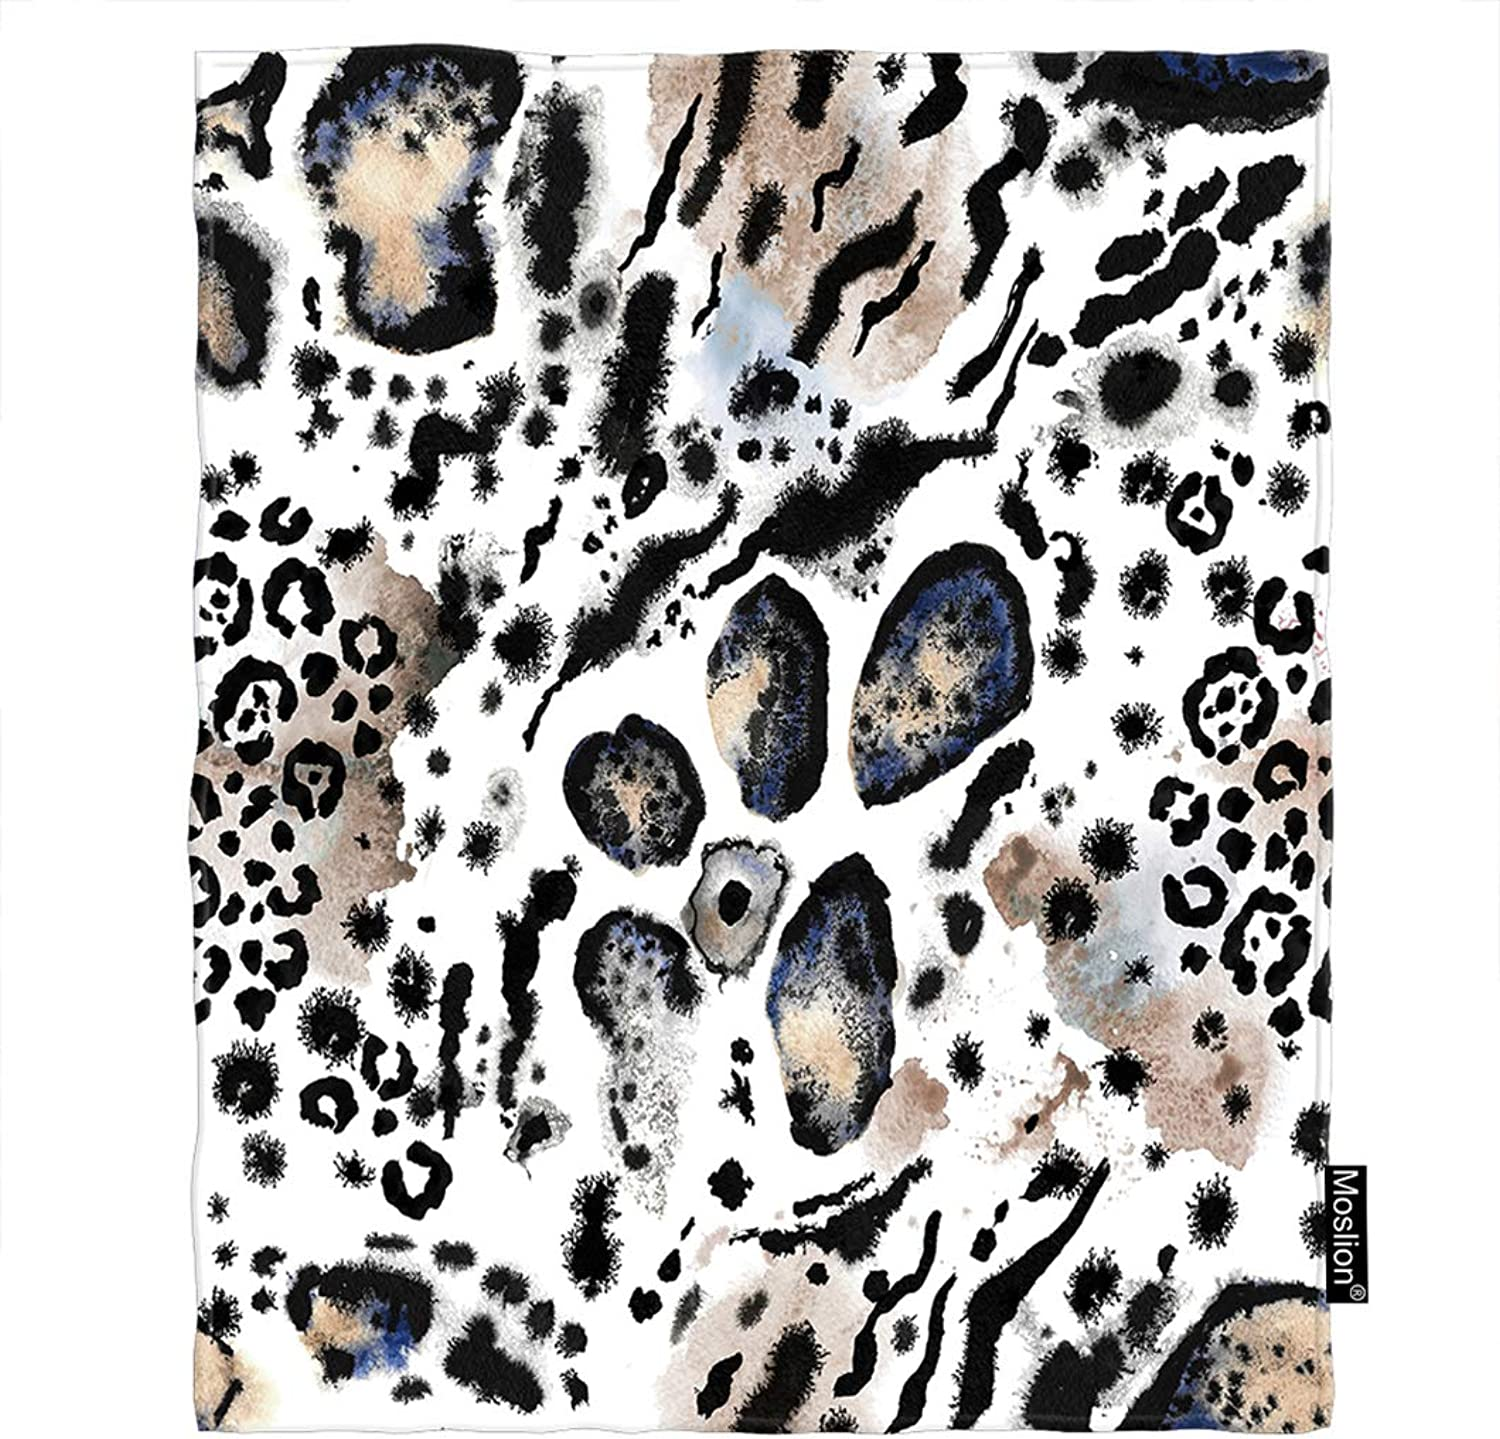 Moslion Leopard Throw Blanket Wild Animal Tiger Lion Snake Leo Skin Fur Spots Stripes Blanket Home Decorative Flannel Warm Travel Blankets 5060 Inch for Couch Bed